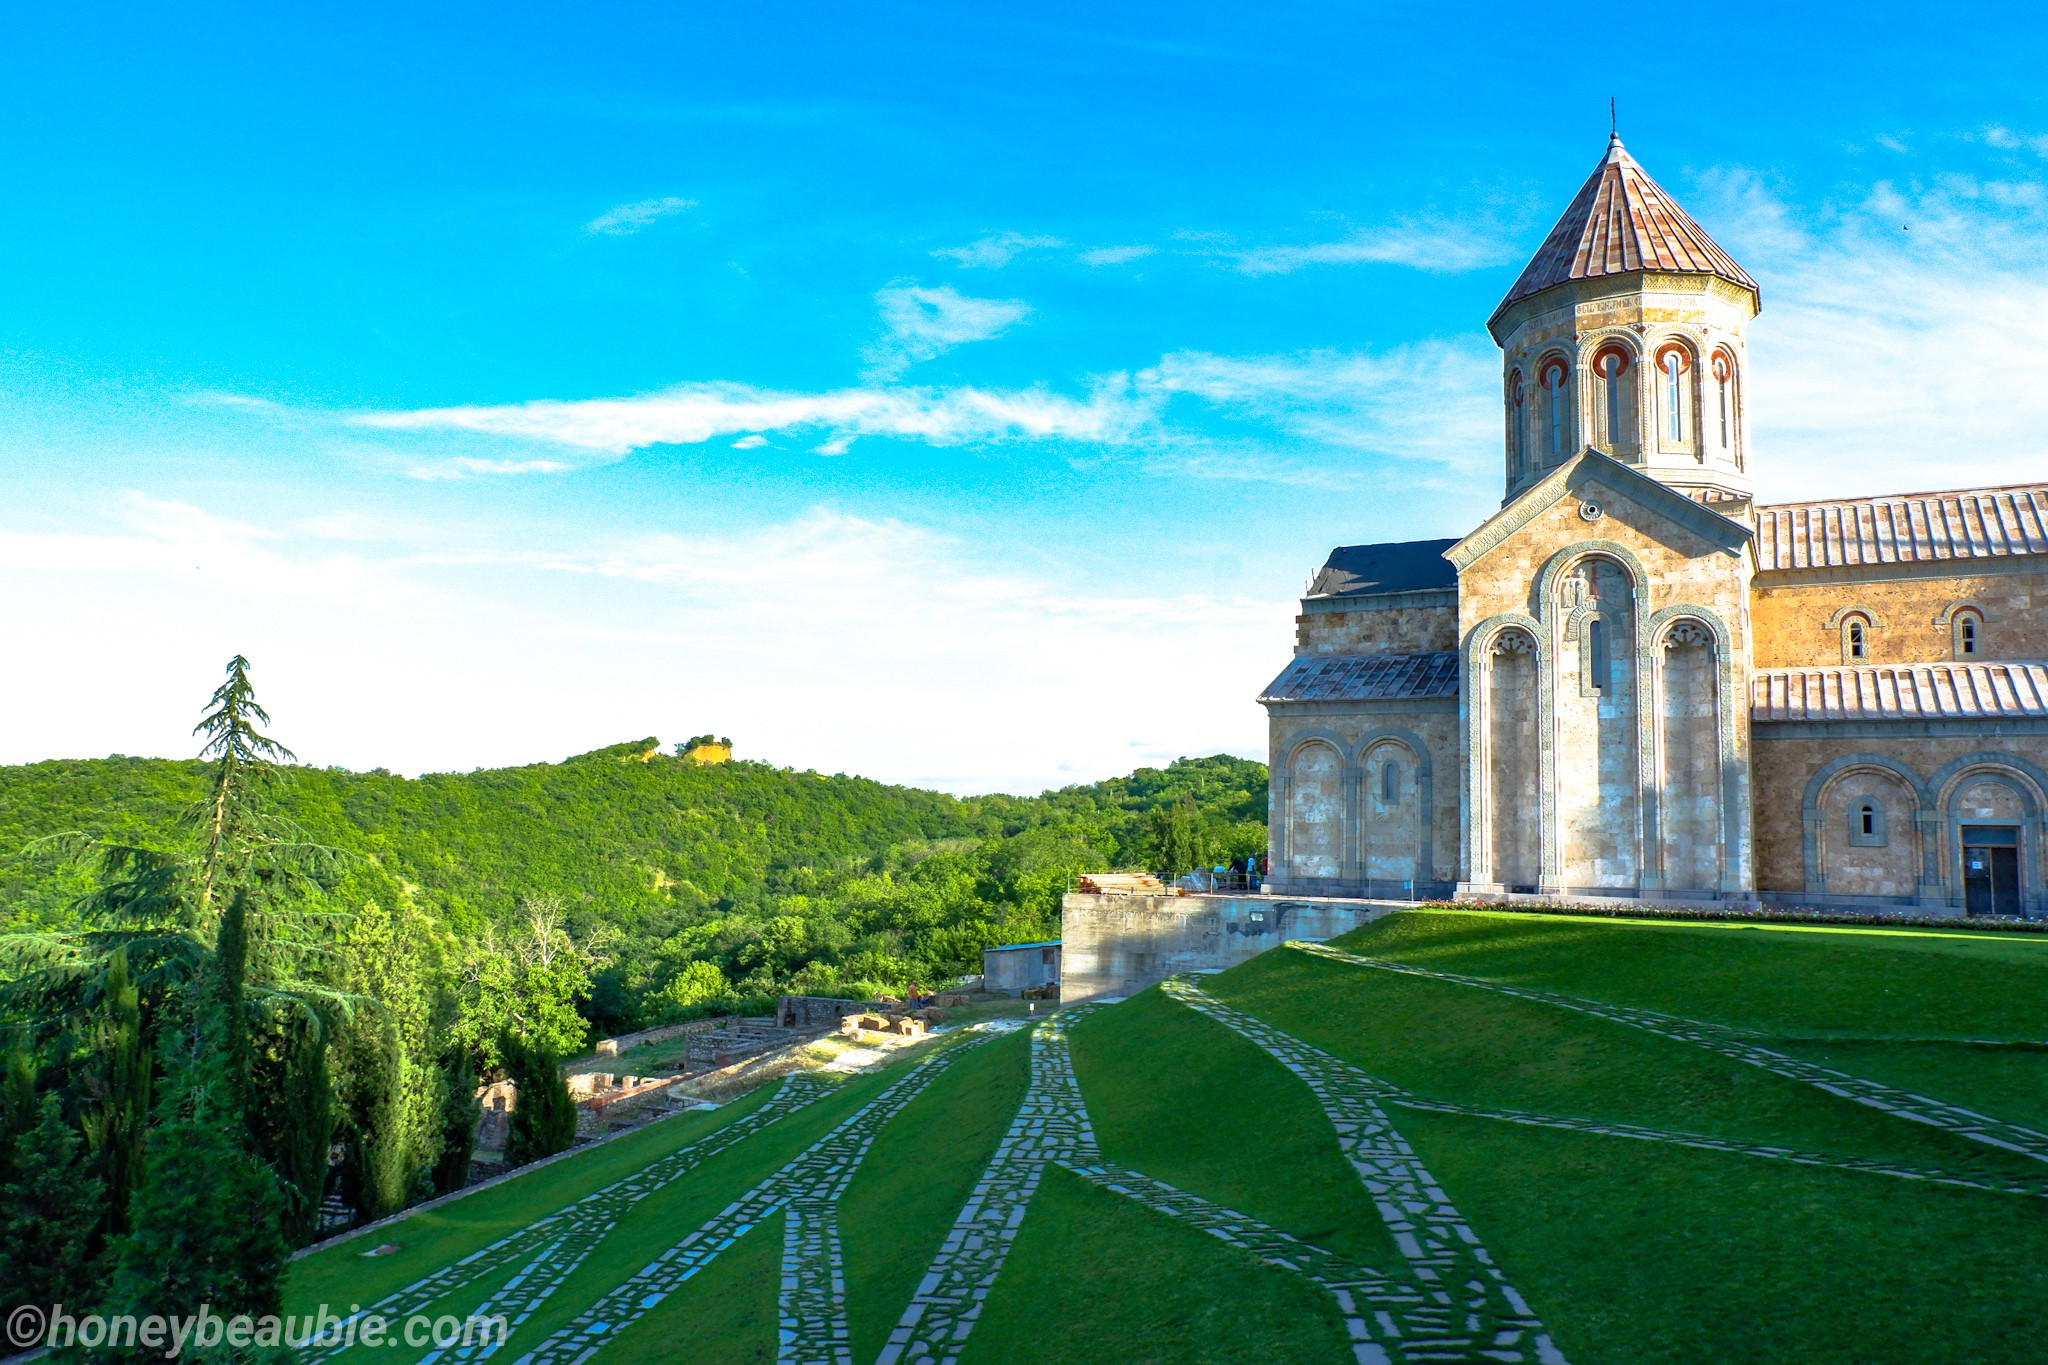 bodbe-monastery-landscape-view-with-gardens-meadows